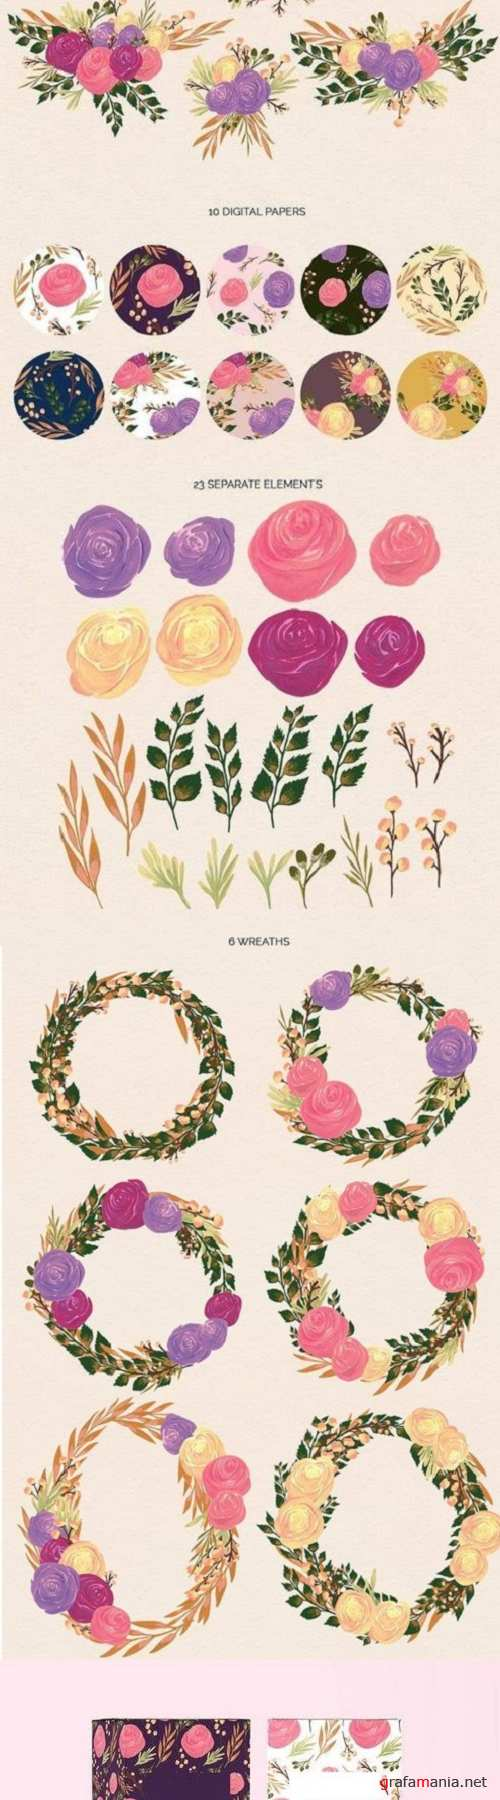 Puspita Gouache Flowers Design Set - 1420218